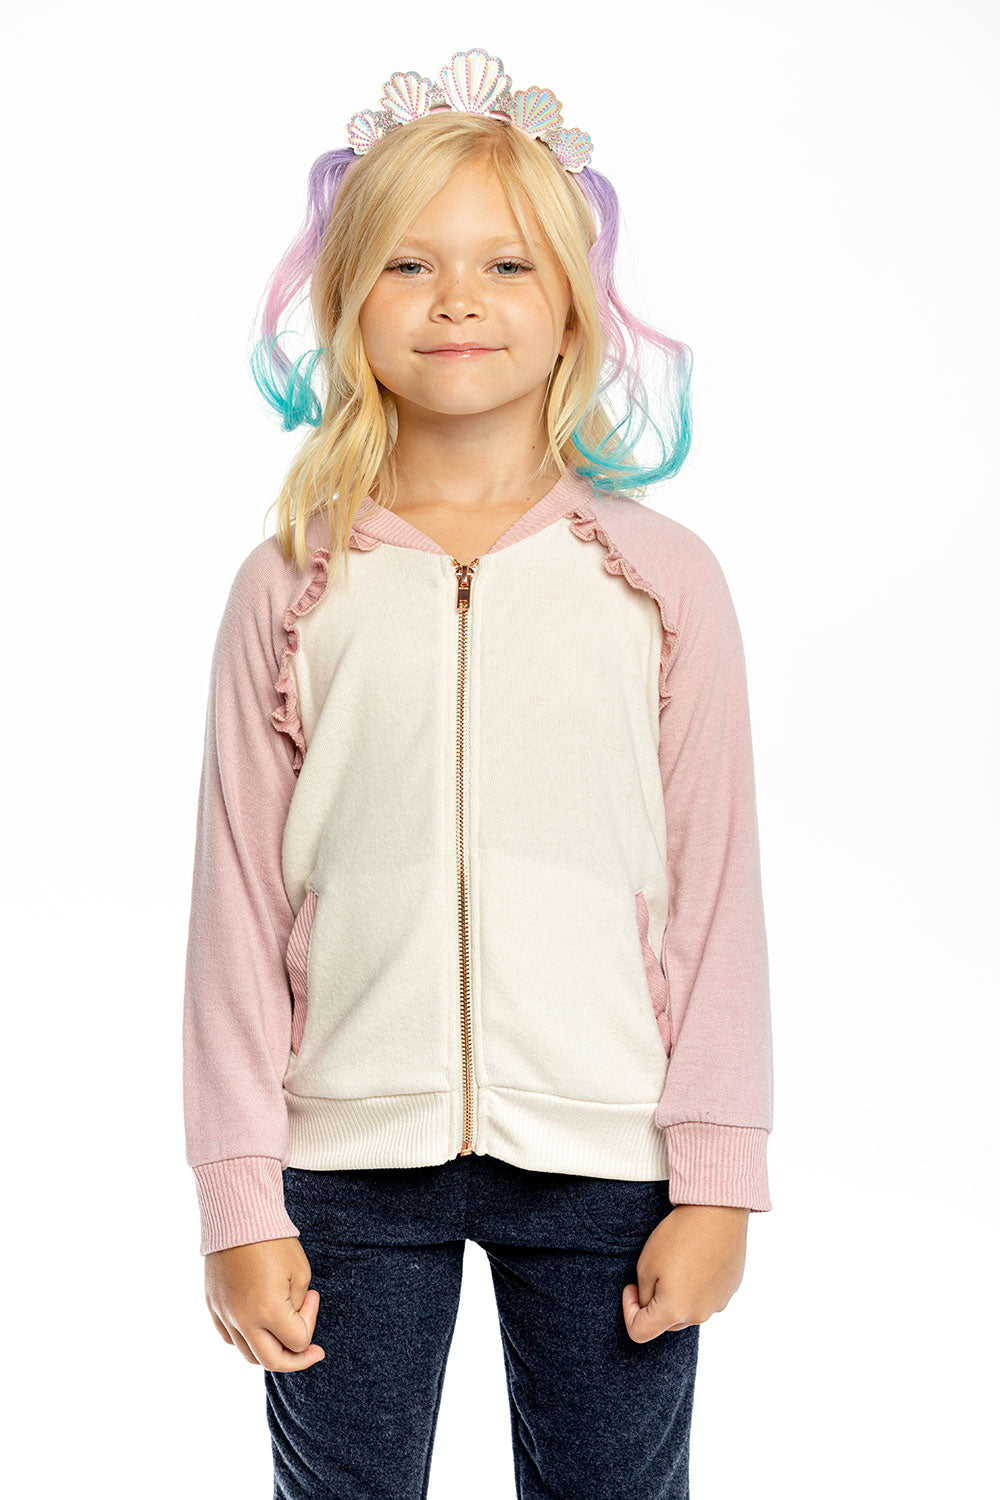 Girls Bliss Knit Color Blocked Ruffle Raglan Track Jacket GIRLS chaserbrand4.myshopify.com